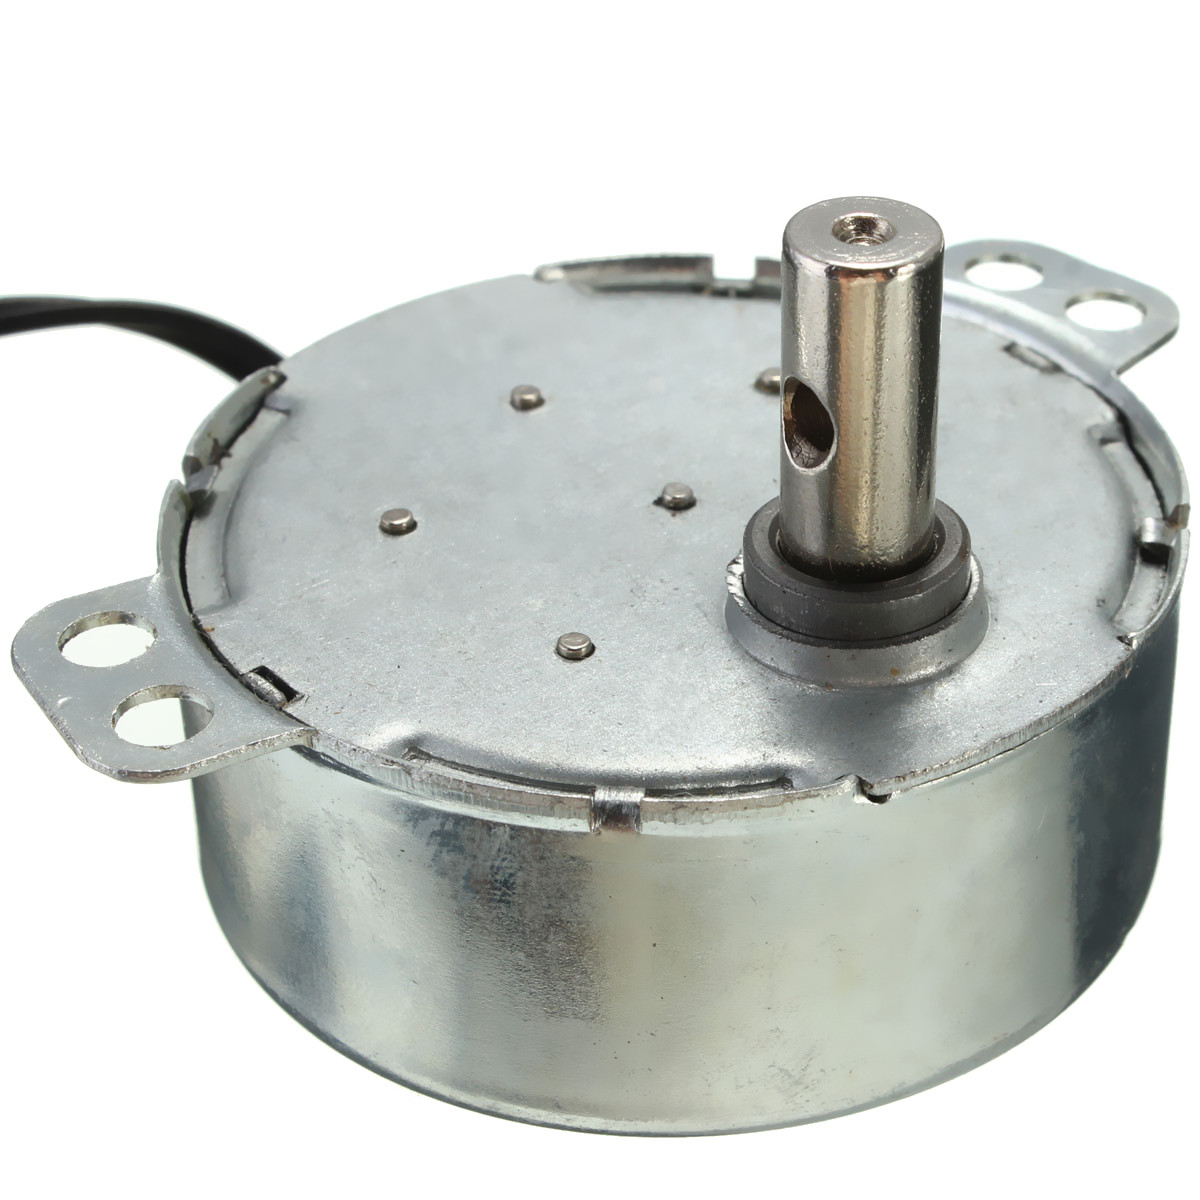 8-10 RPM Turntable Synchronous Motor For Microwave Oven